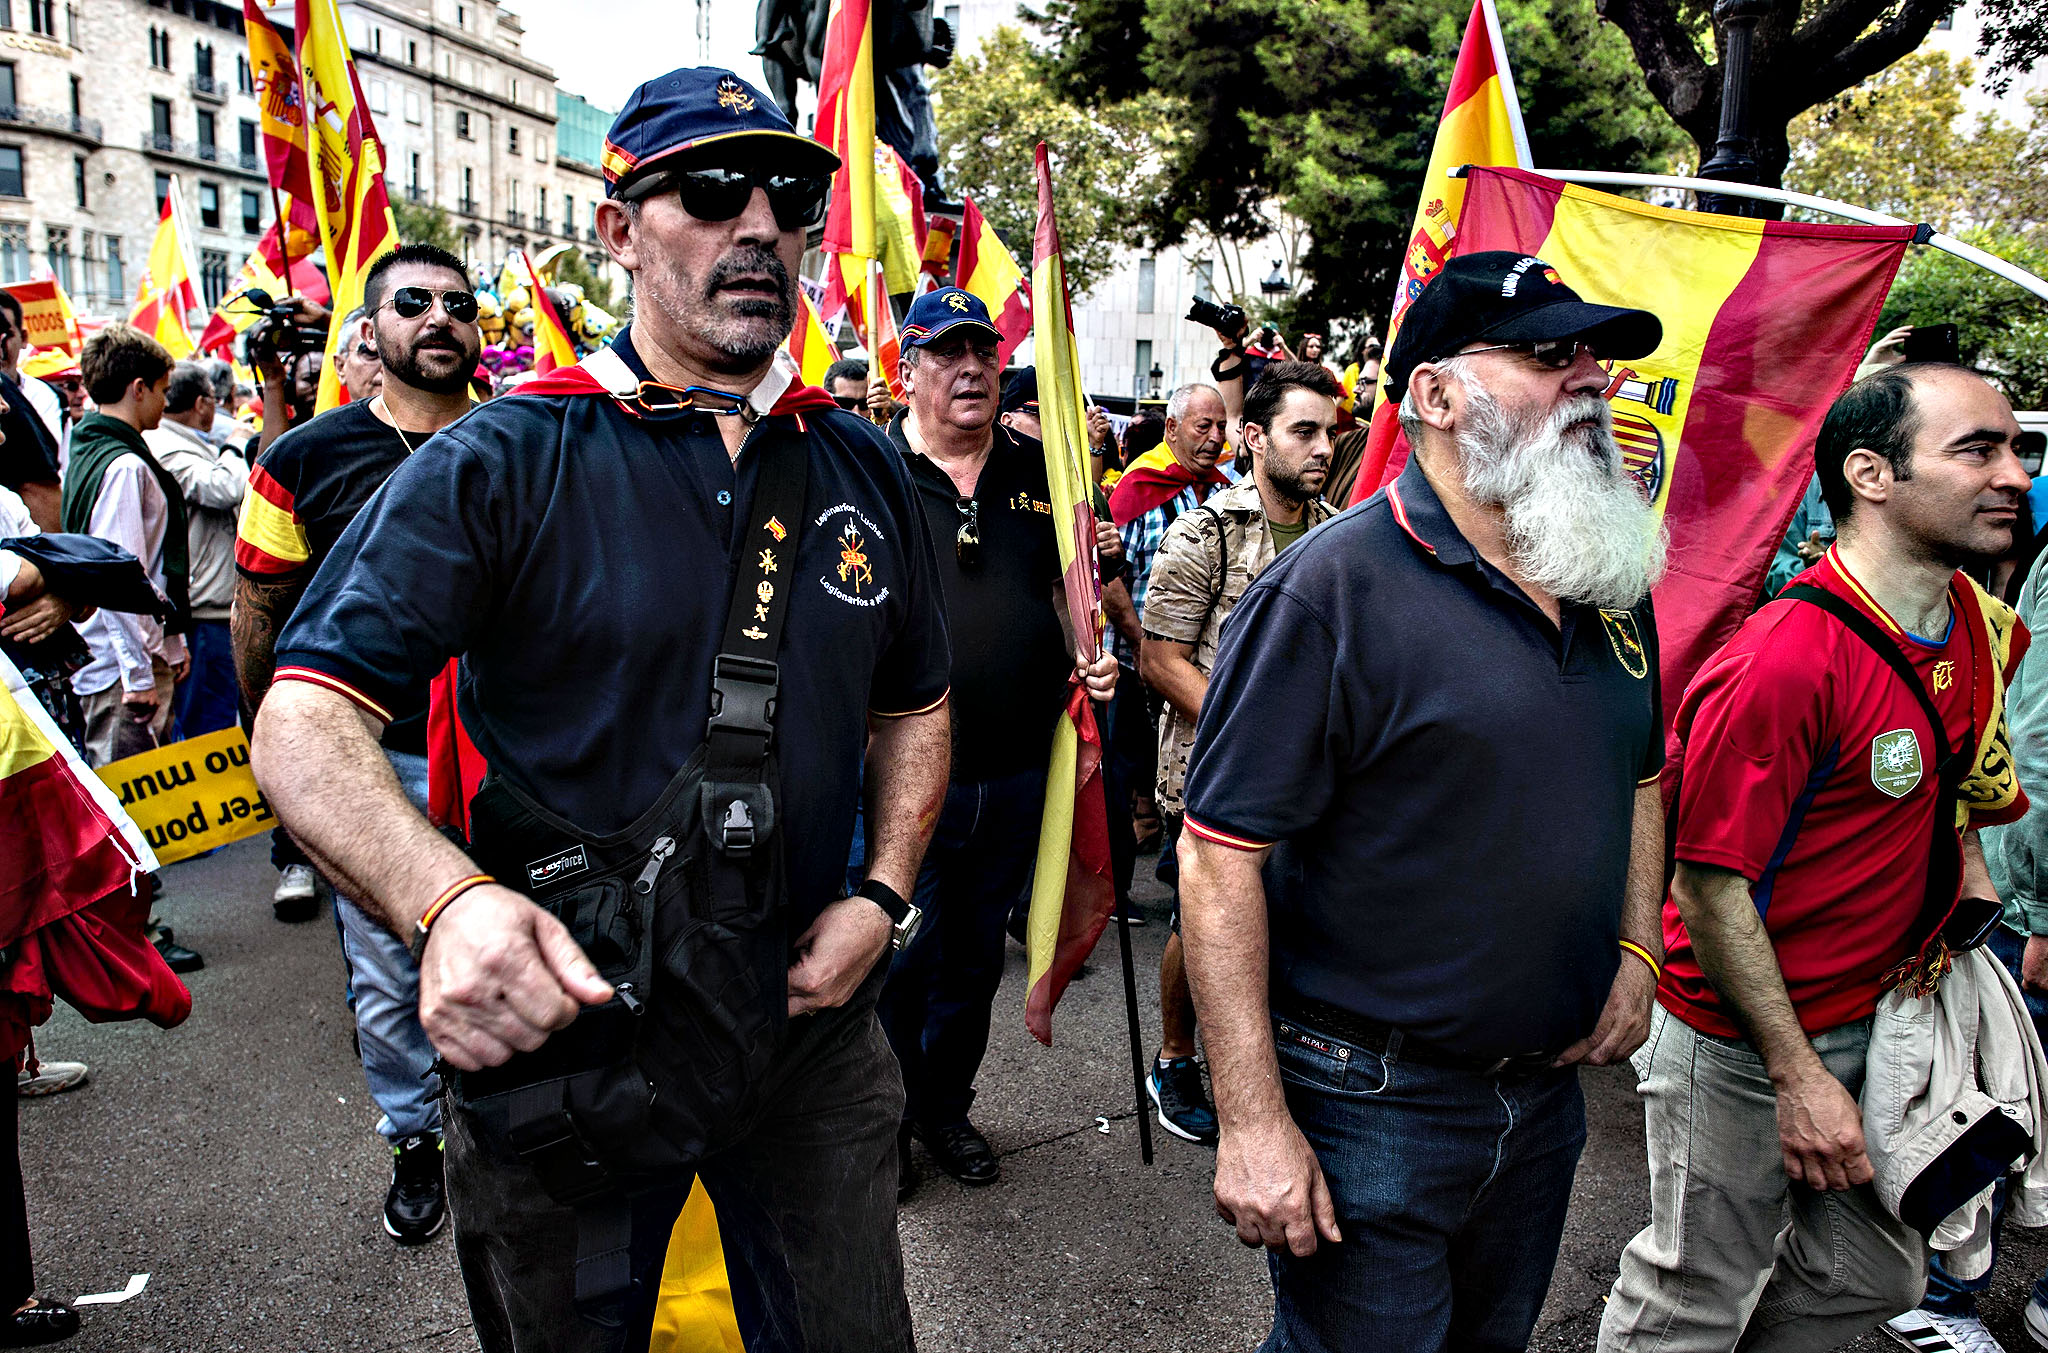 Anti-separatist Catalans gather in Plaza Catalunya square during a demonstration on October 12, 2015 in Barcelona, Spain. Thousands of Anti-separatist Catalans were called by Catalan unionist associations to march on the Spain's National Day to demonstrate against the Catalonia's bid for independence.